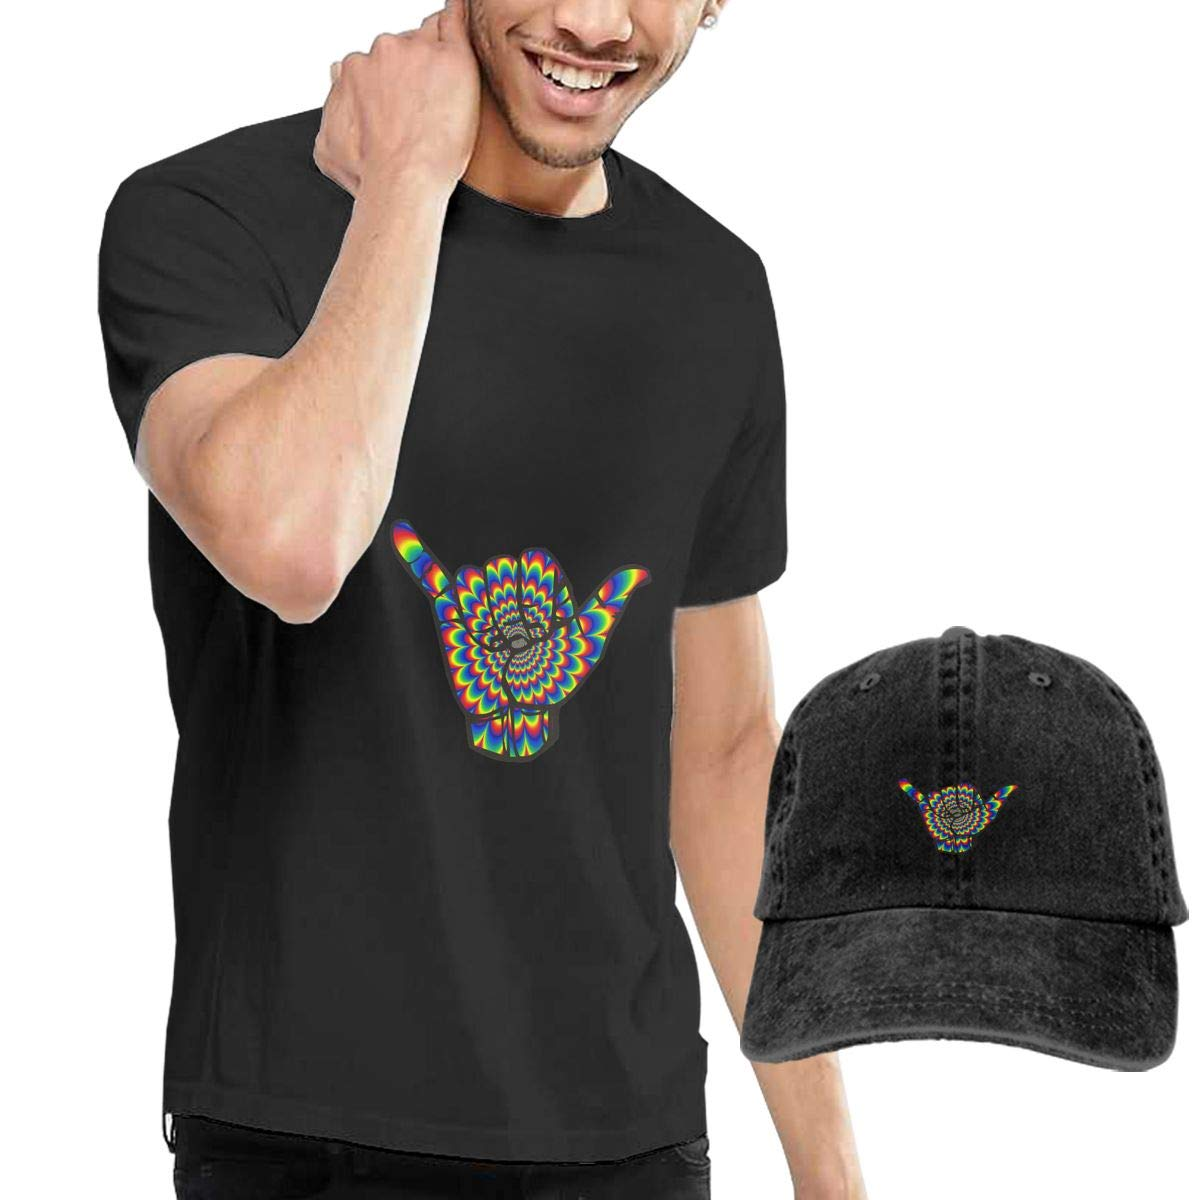 QqZXD Shaka Sign Fashion Mens T-Shirt and Hats Youth /& Adult T-Shirts